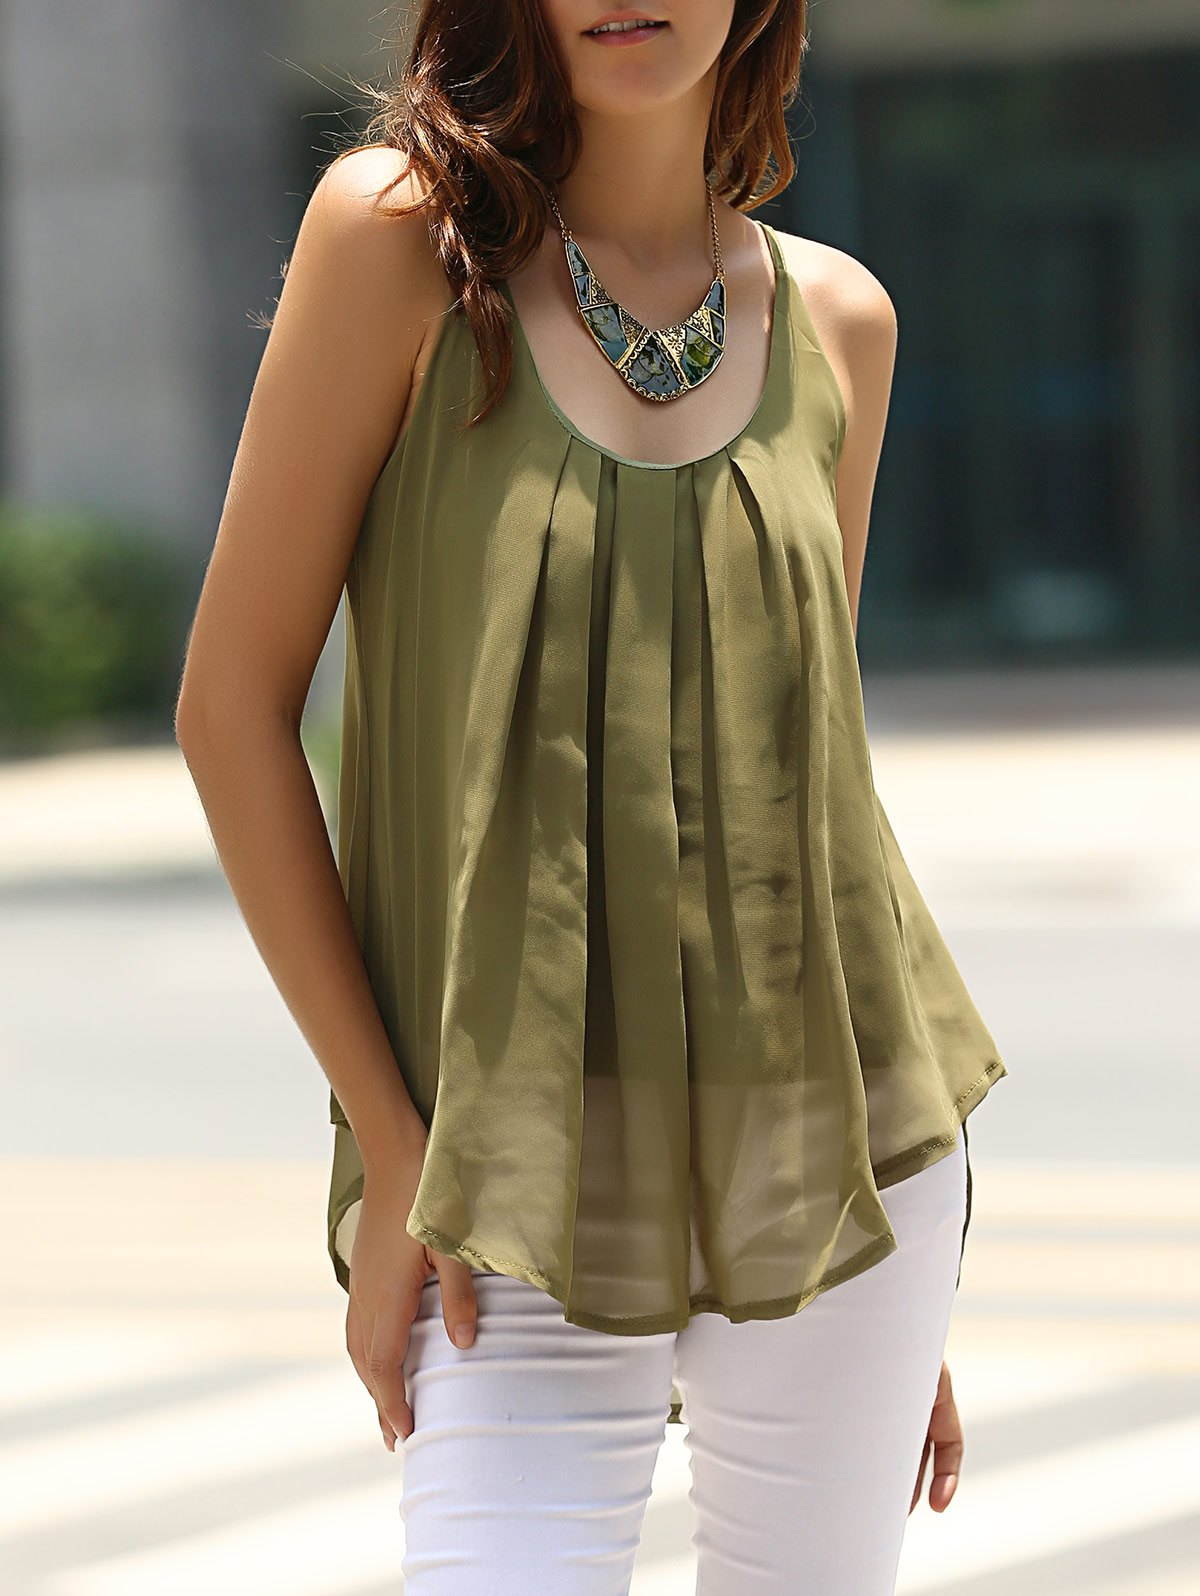 Charming Spaghetti Strap Solid Color Chiffon Women's Tank Top - ARMY GREEN XL